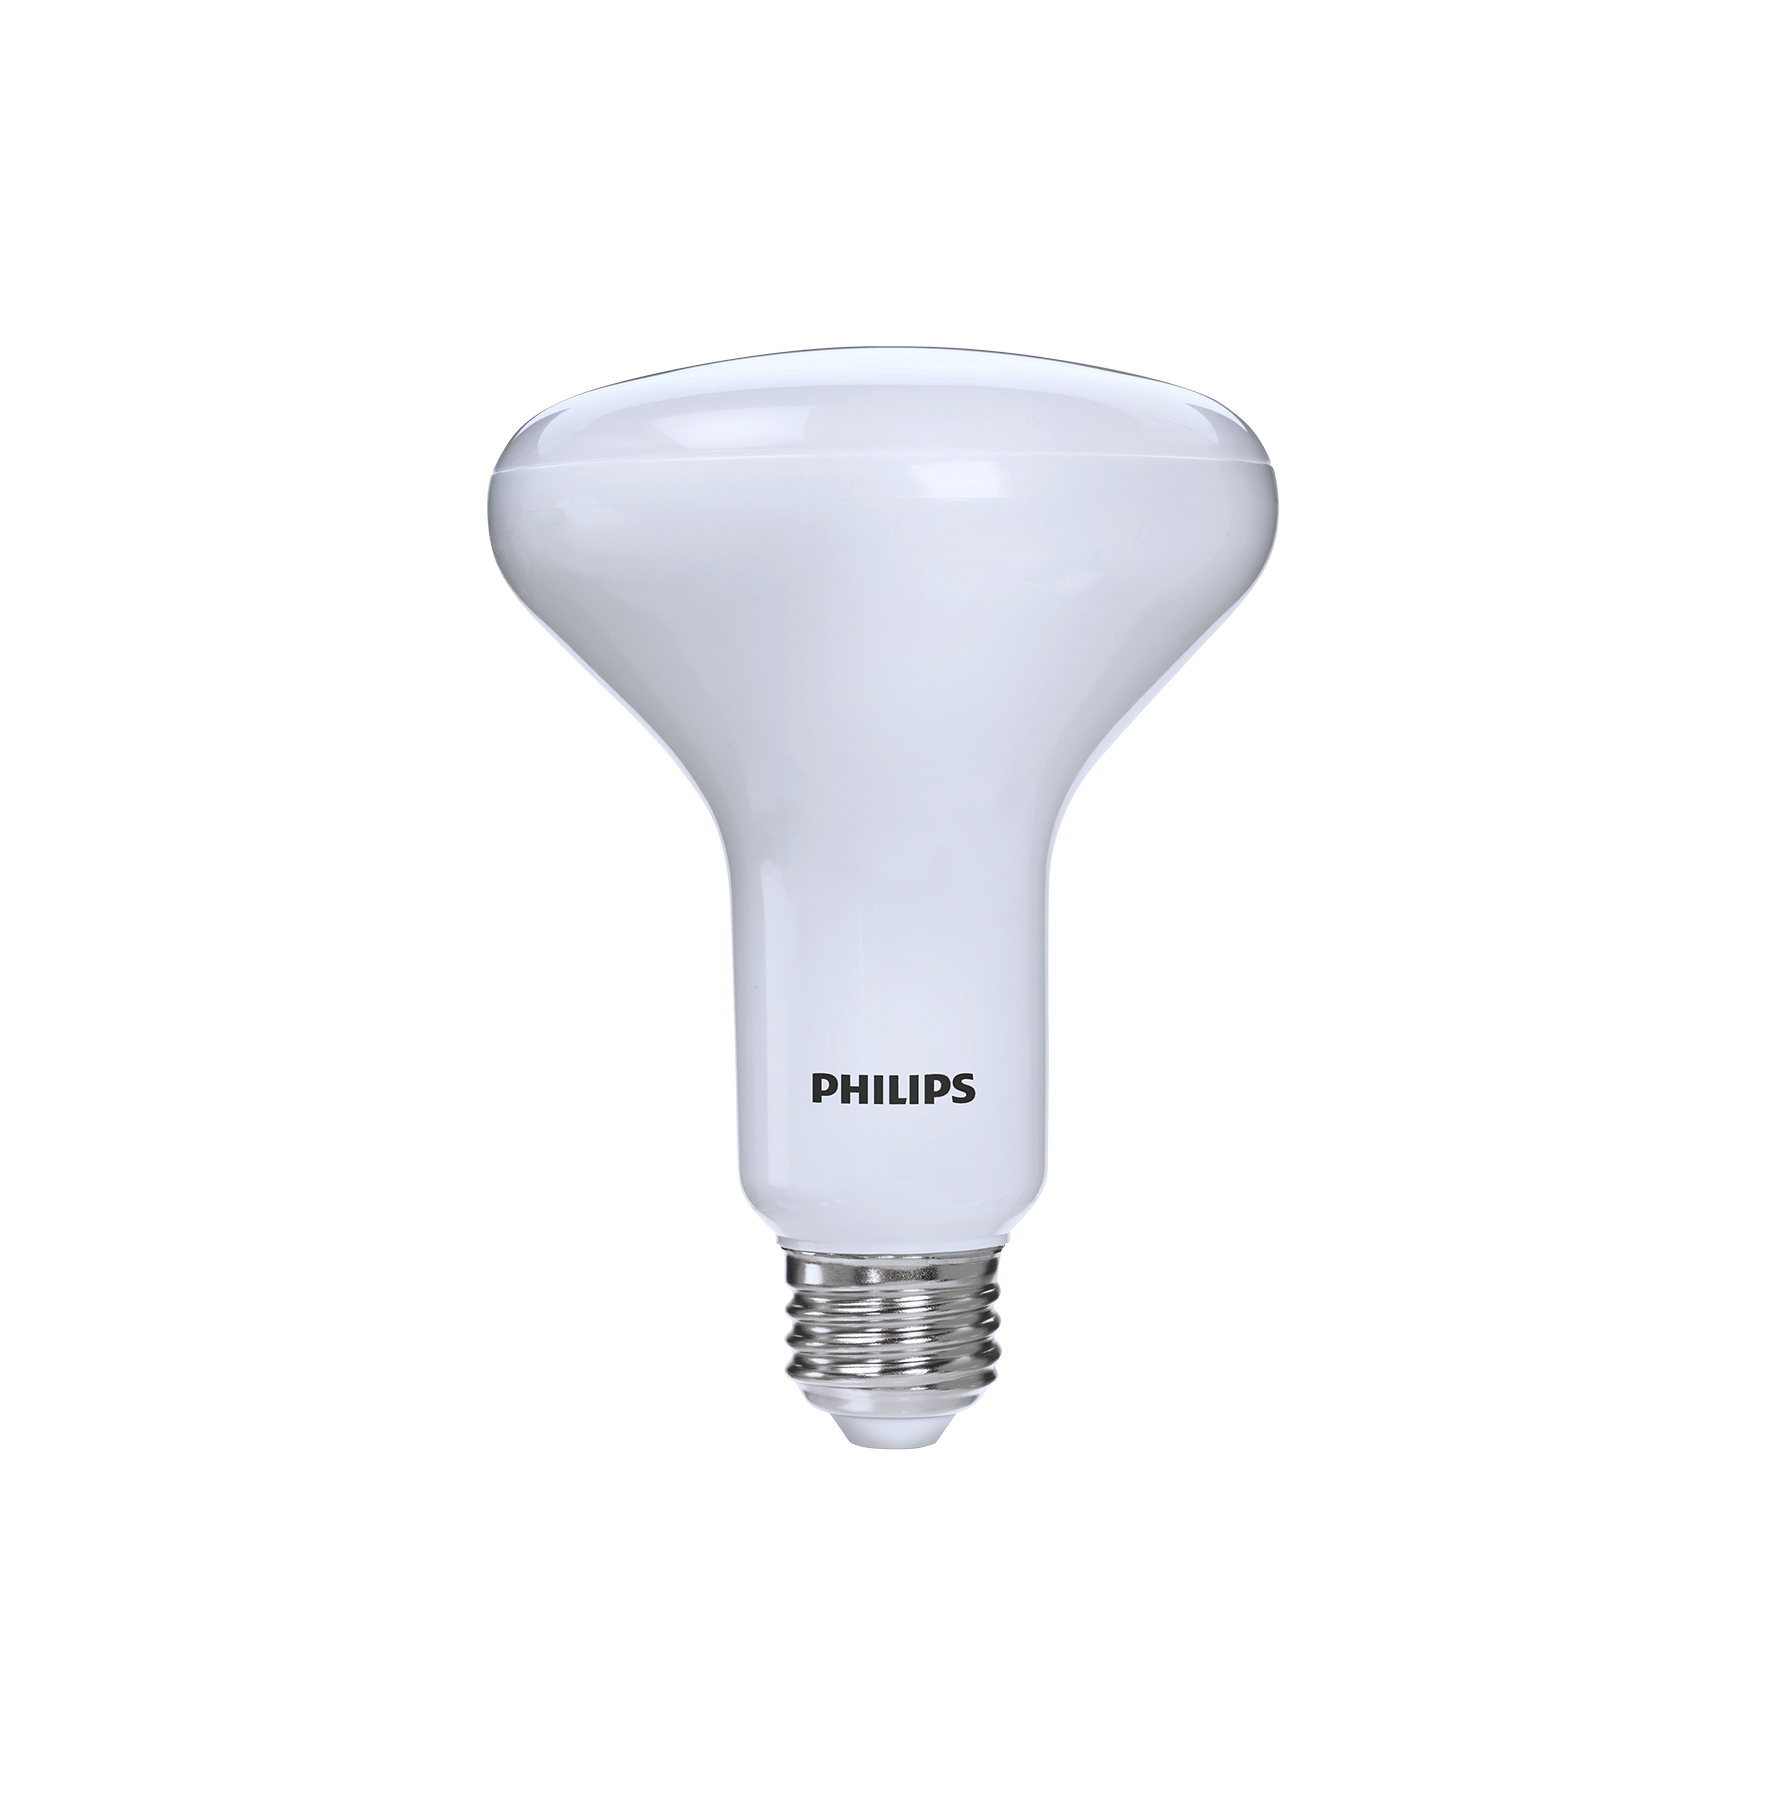 Philips dimmable LED warm-glow-effect bulb